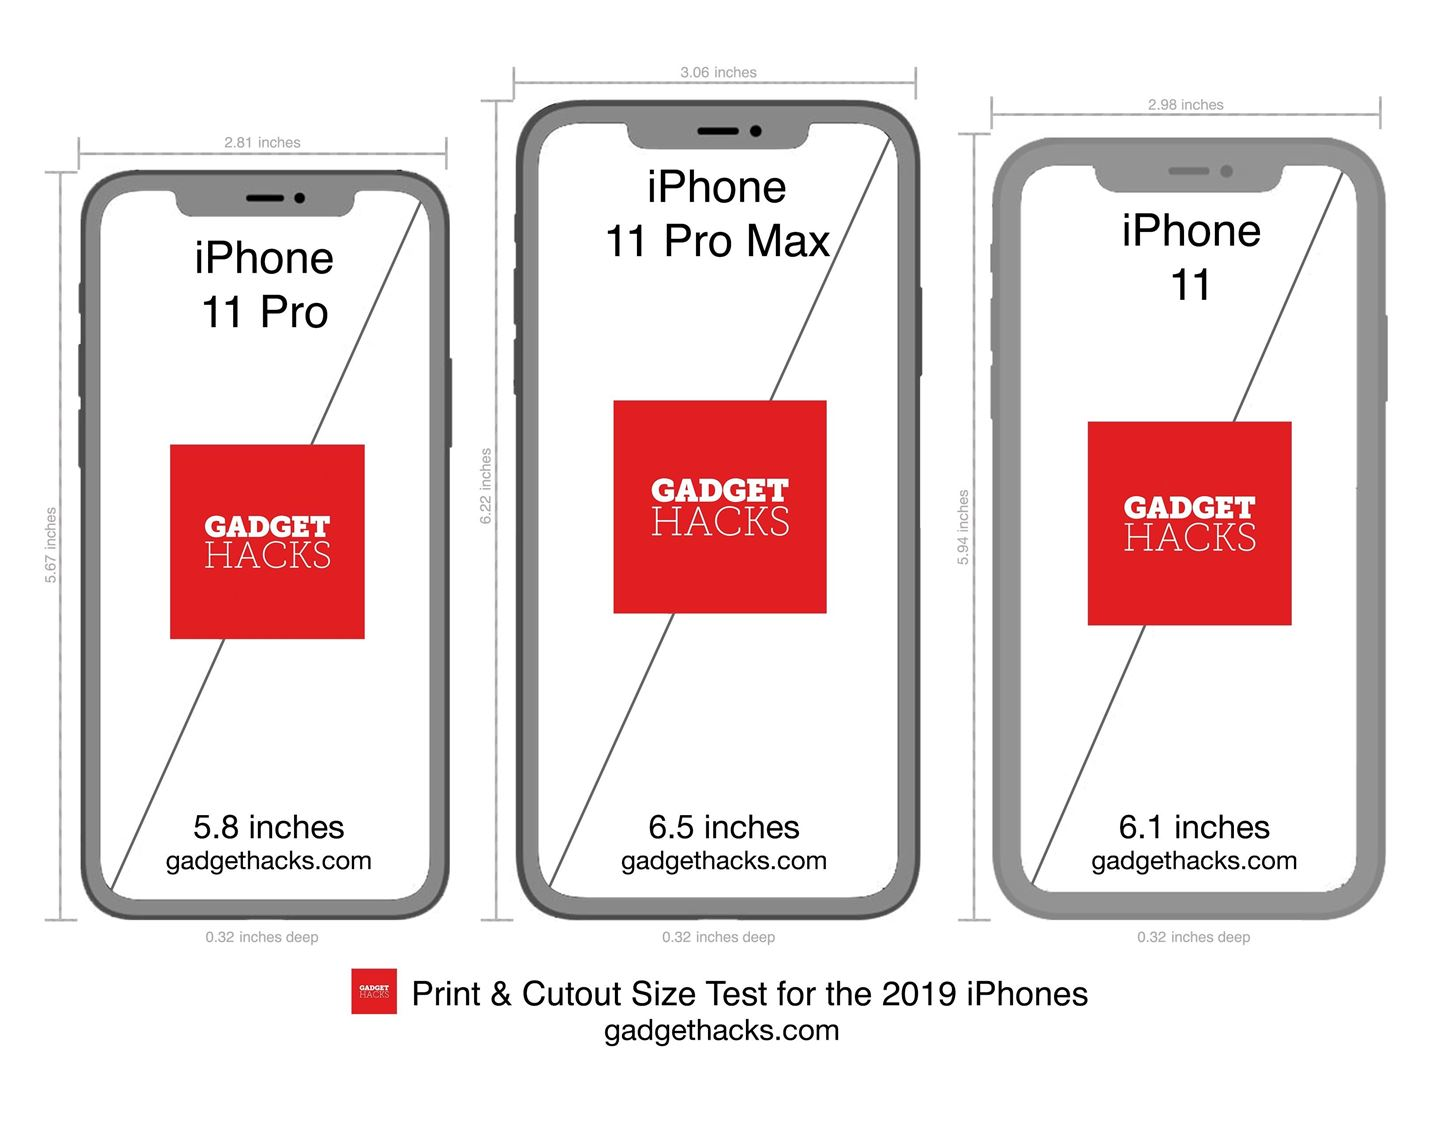 Printable iPhone 11, 11 Pro & 11 Pro Max Cutouts - See what size suits you